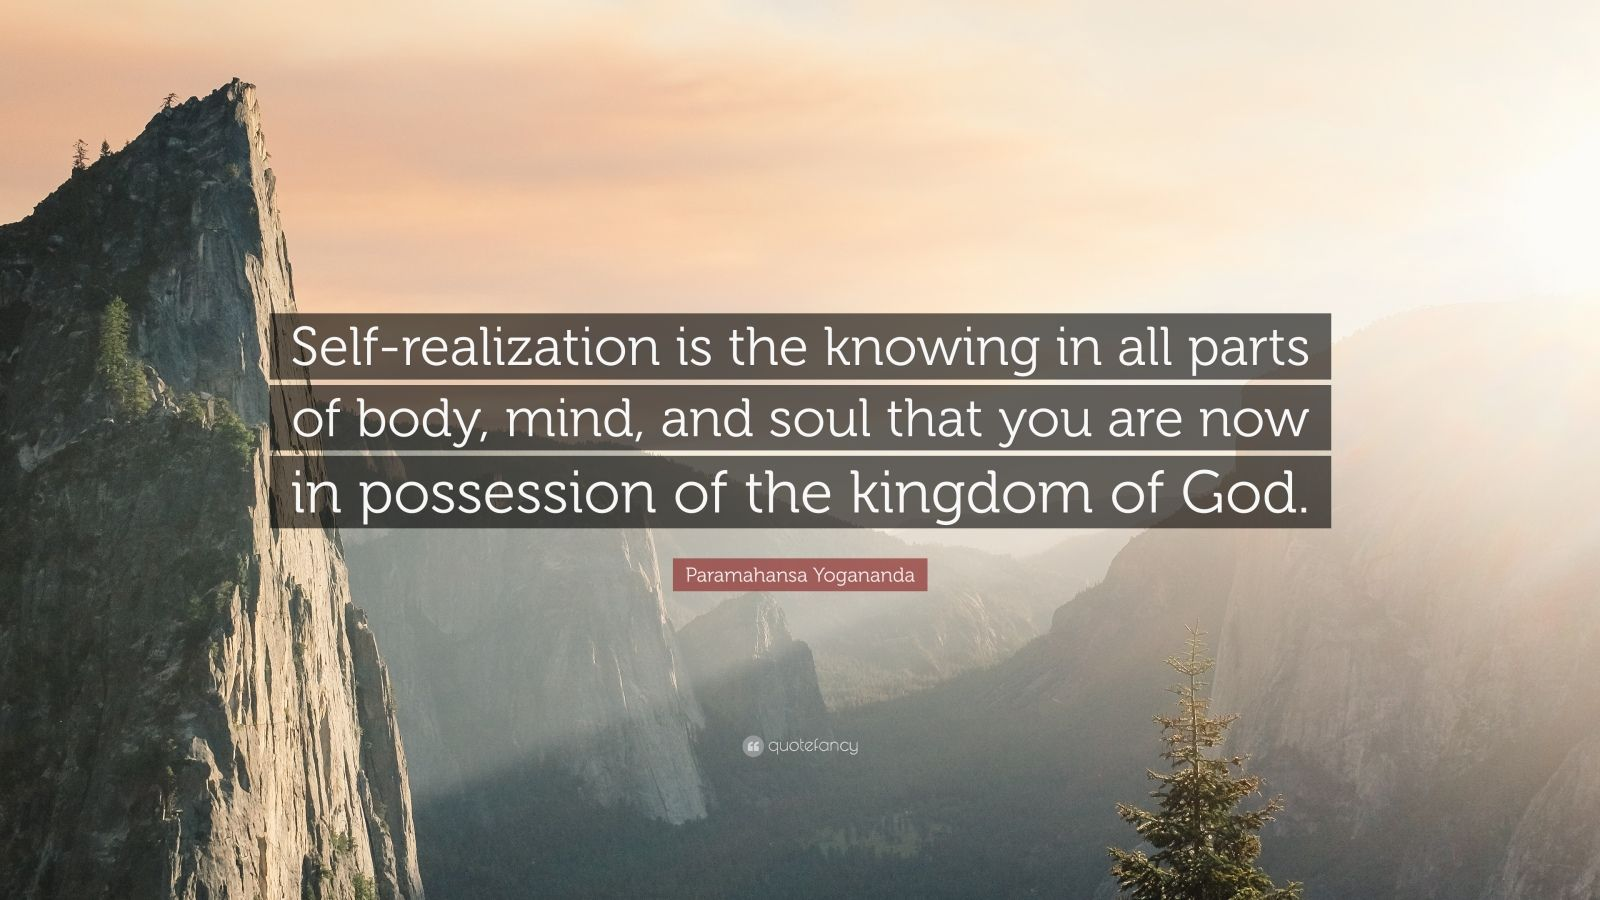 """Paramahansa Yogananda Quote: """"Self-realization is the knowing in all parts of body, mind, and soul that you are now in possession of the kingdom of God."""""""